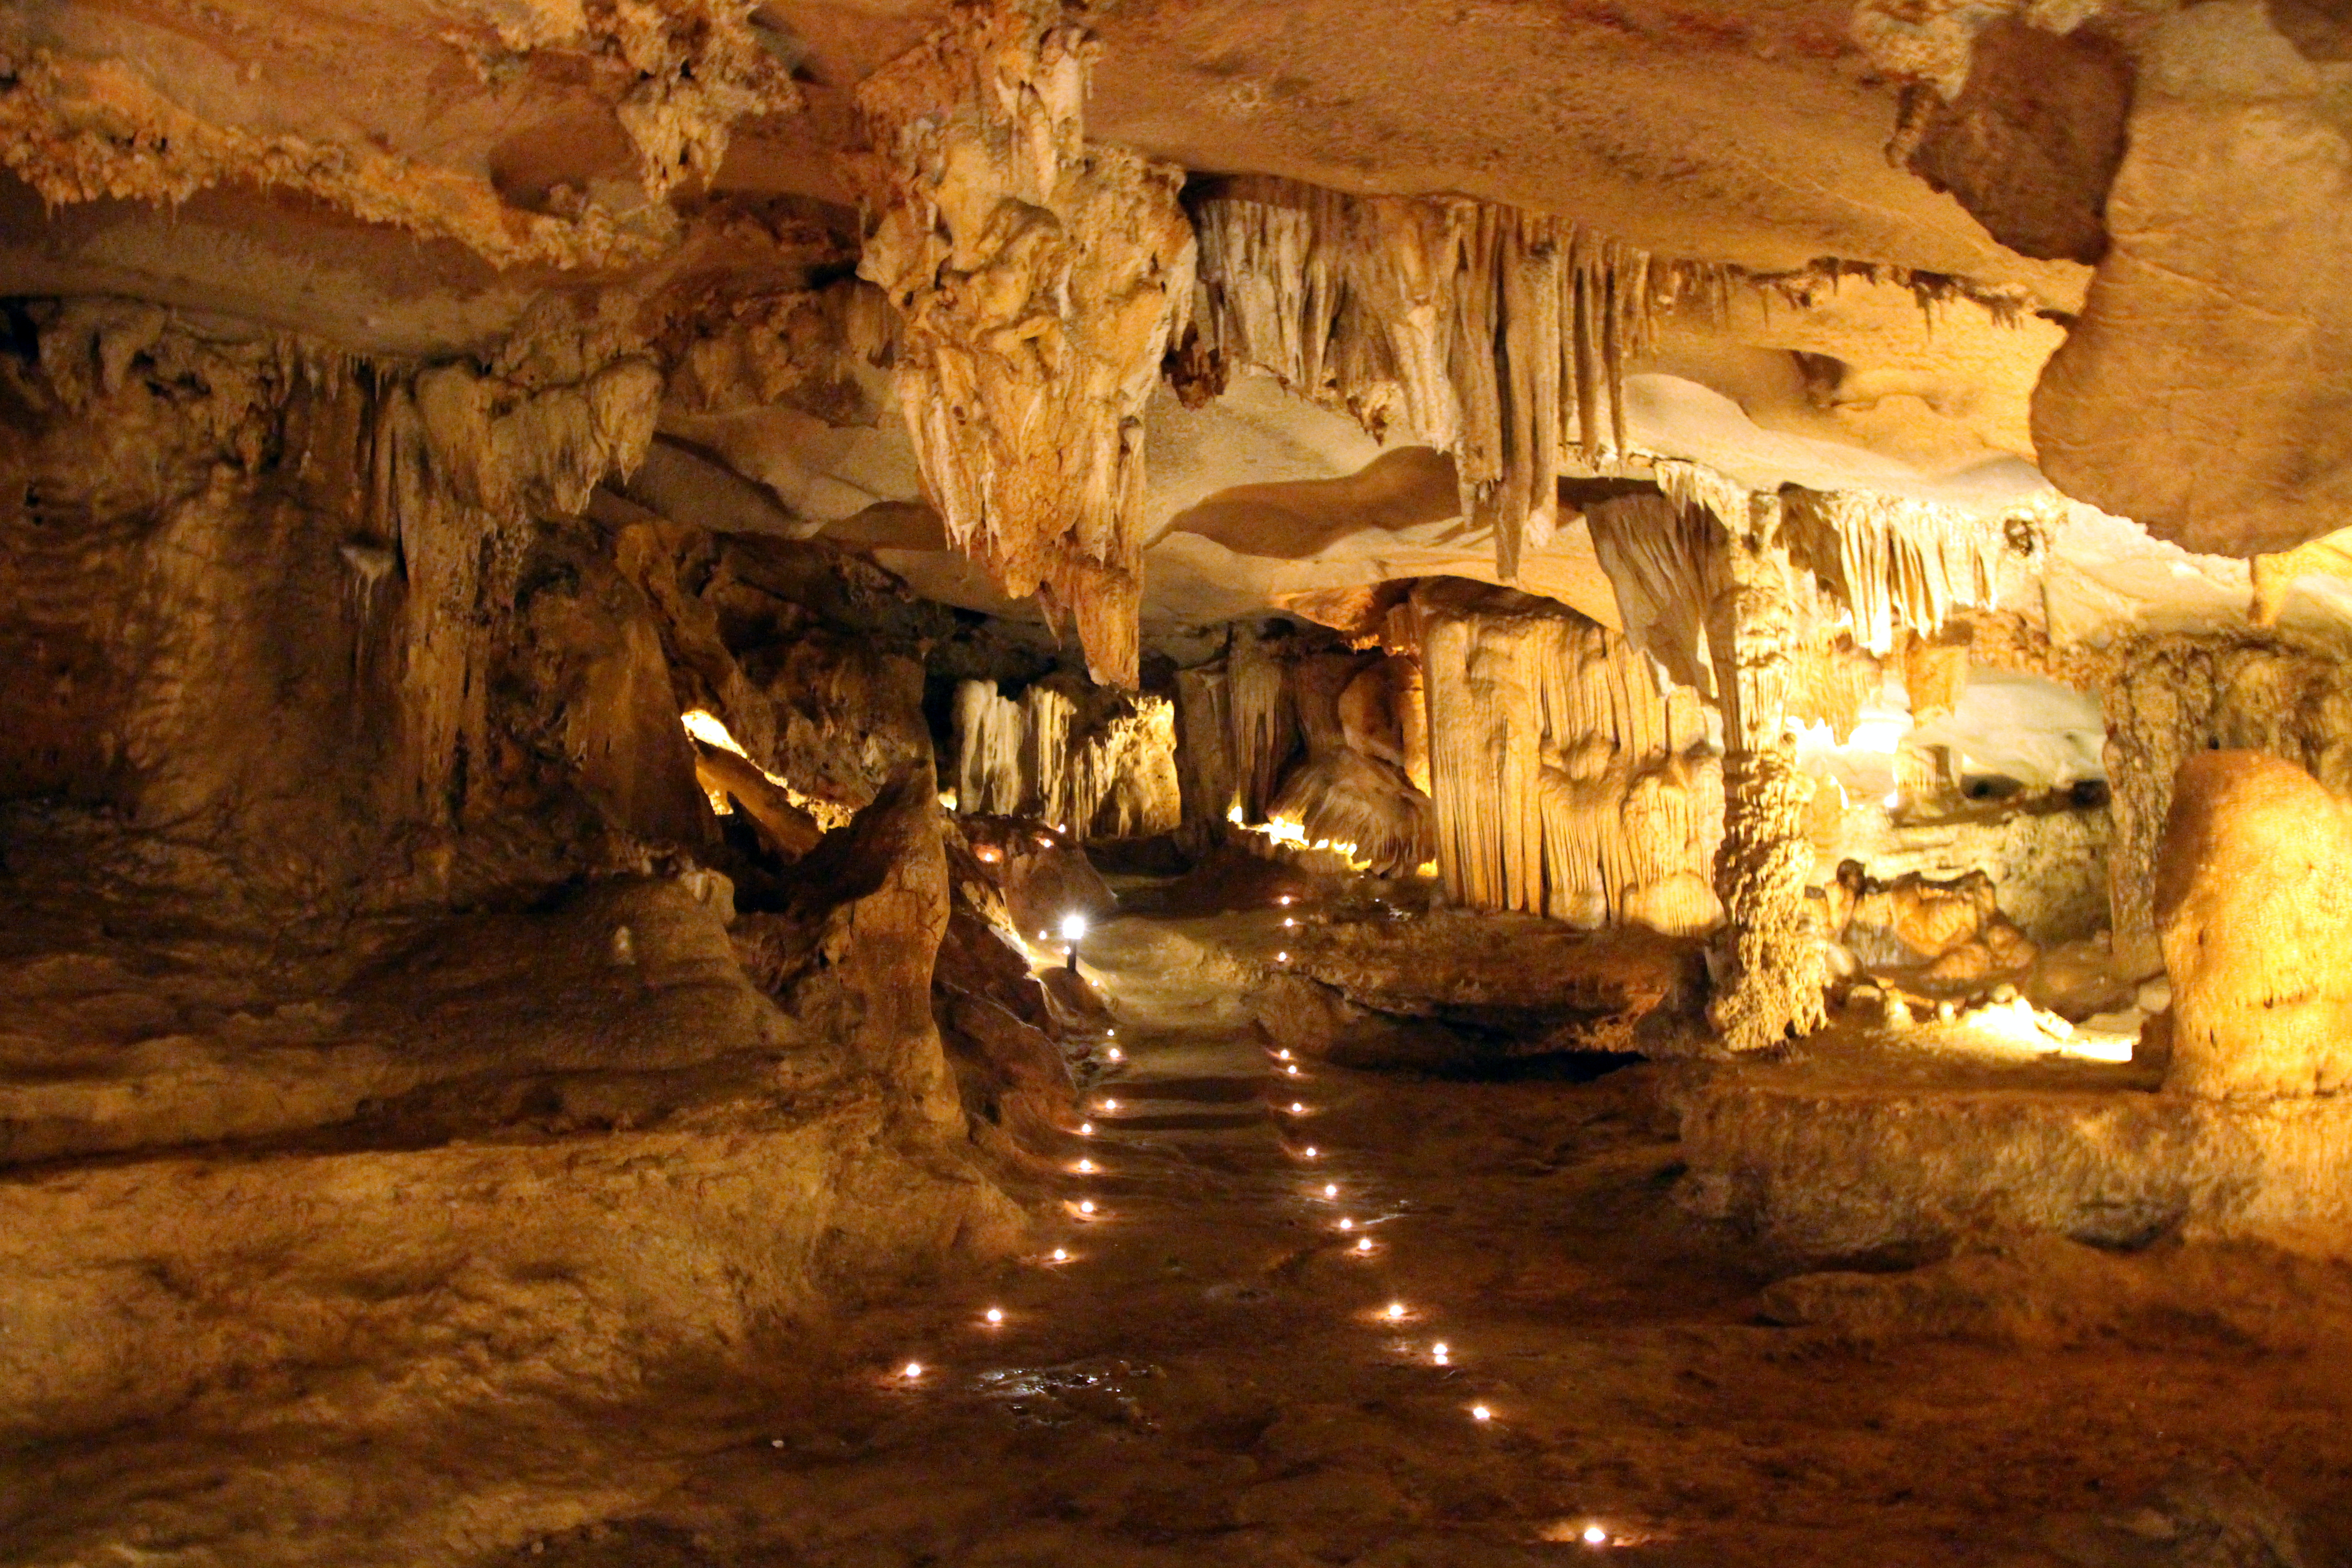 <ysterious Thien Canh Son Cave